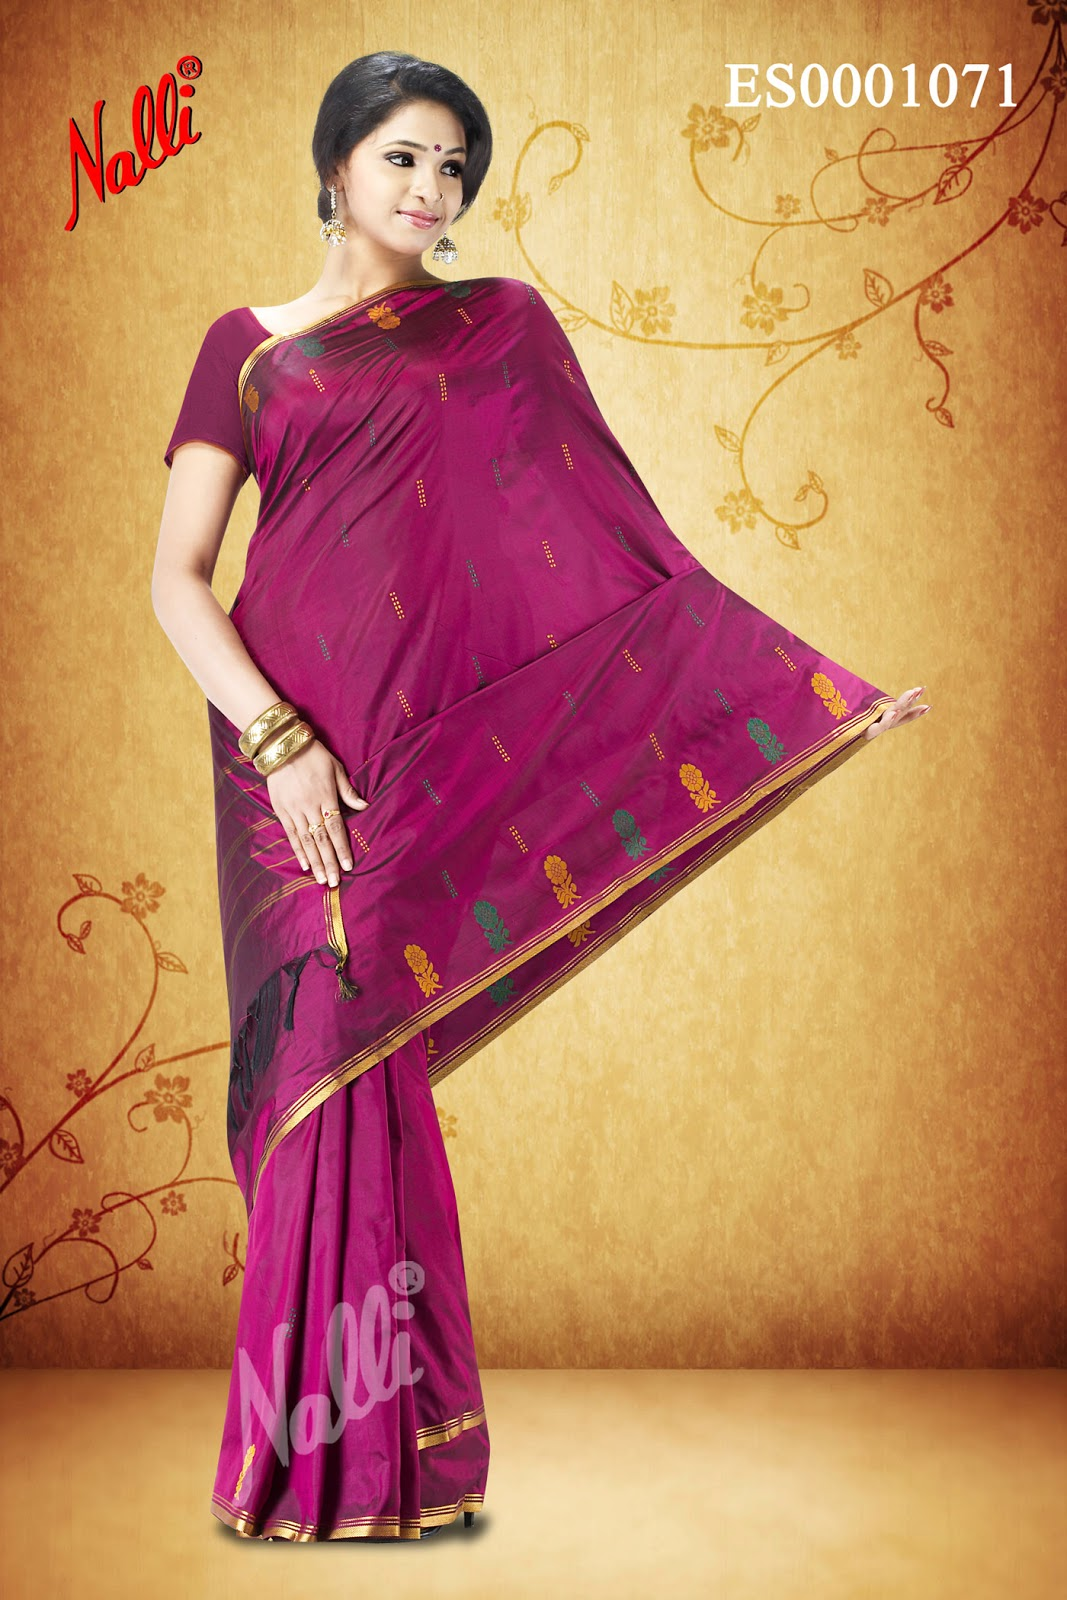 Nalli Silks Diwali Collections